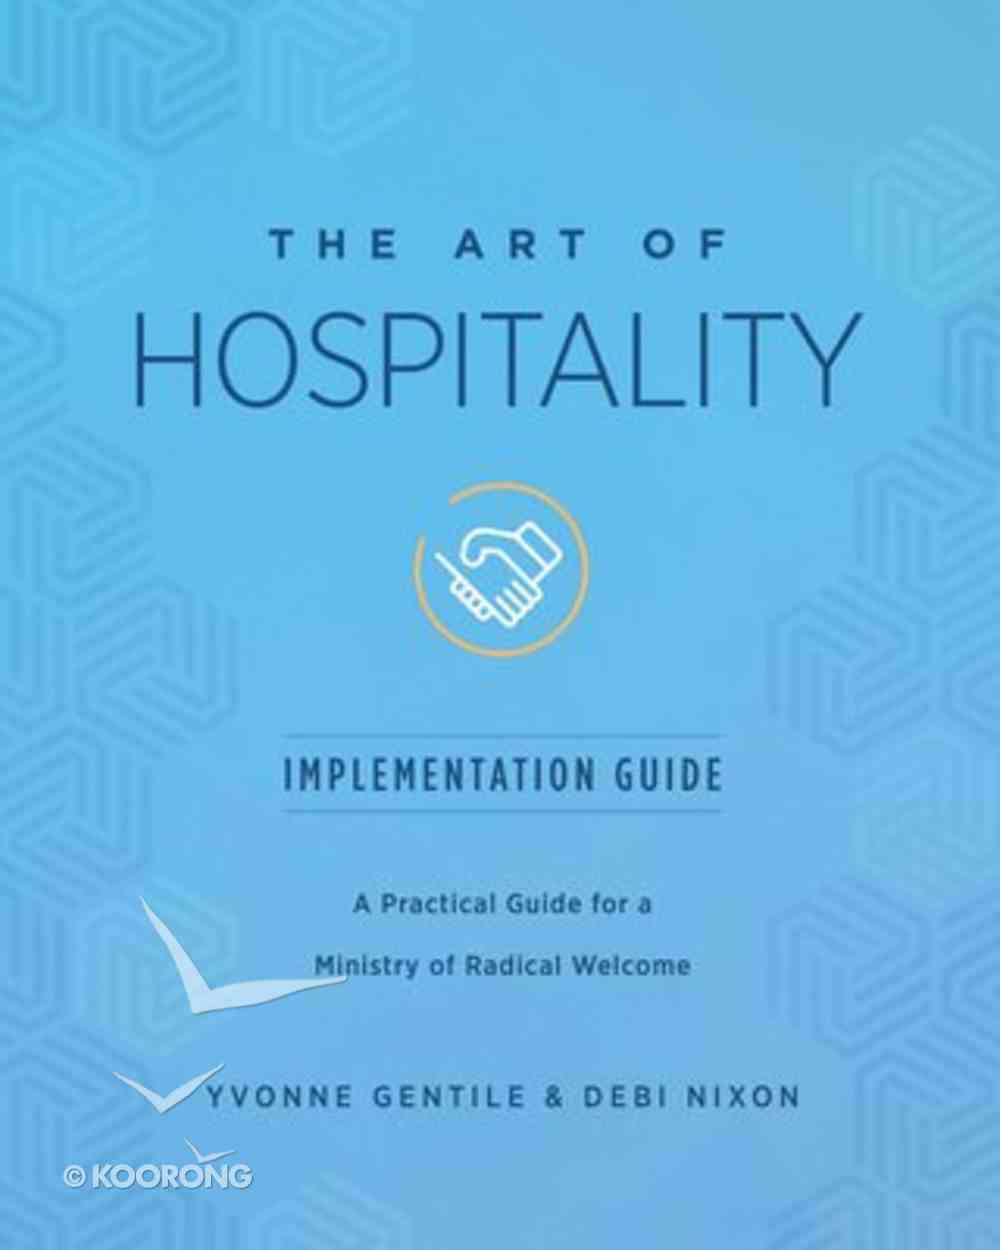 The Art of Hospitality: A Practical Guide For a Ministry of Radical Welcome (Implementation Guide) Paperback